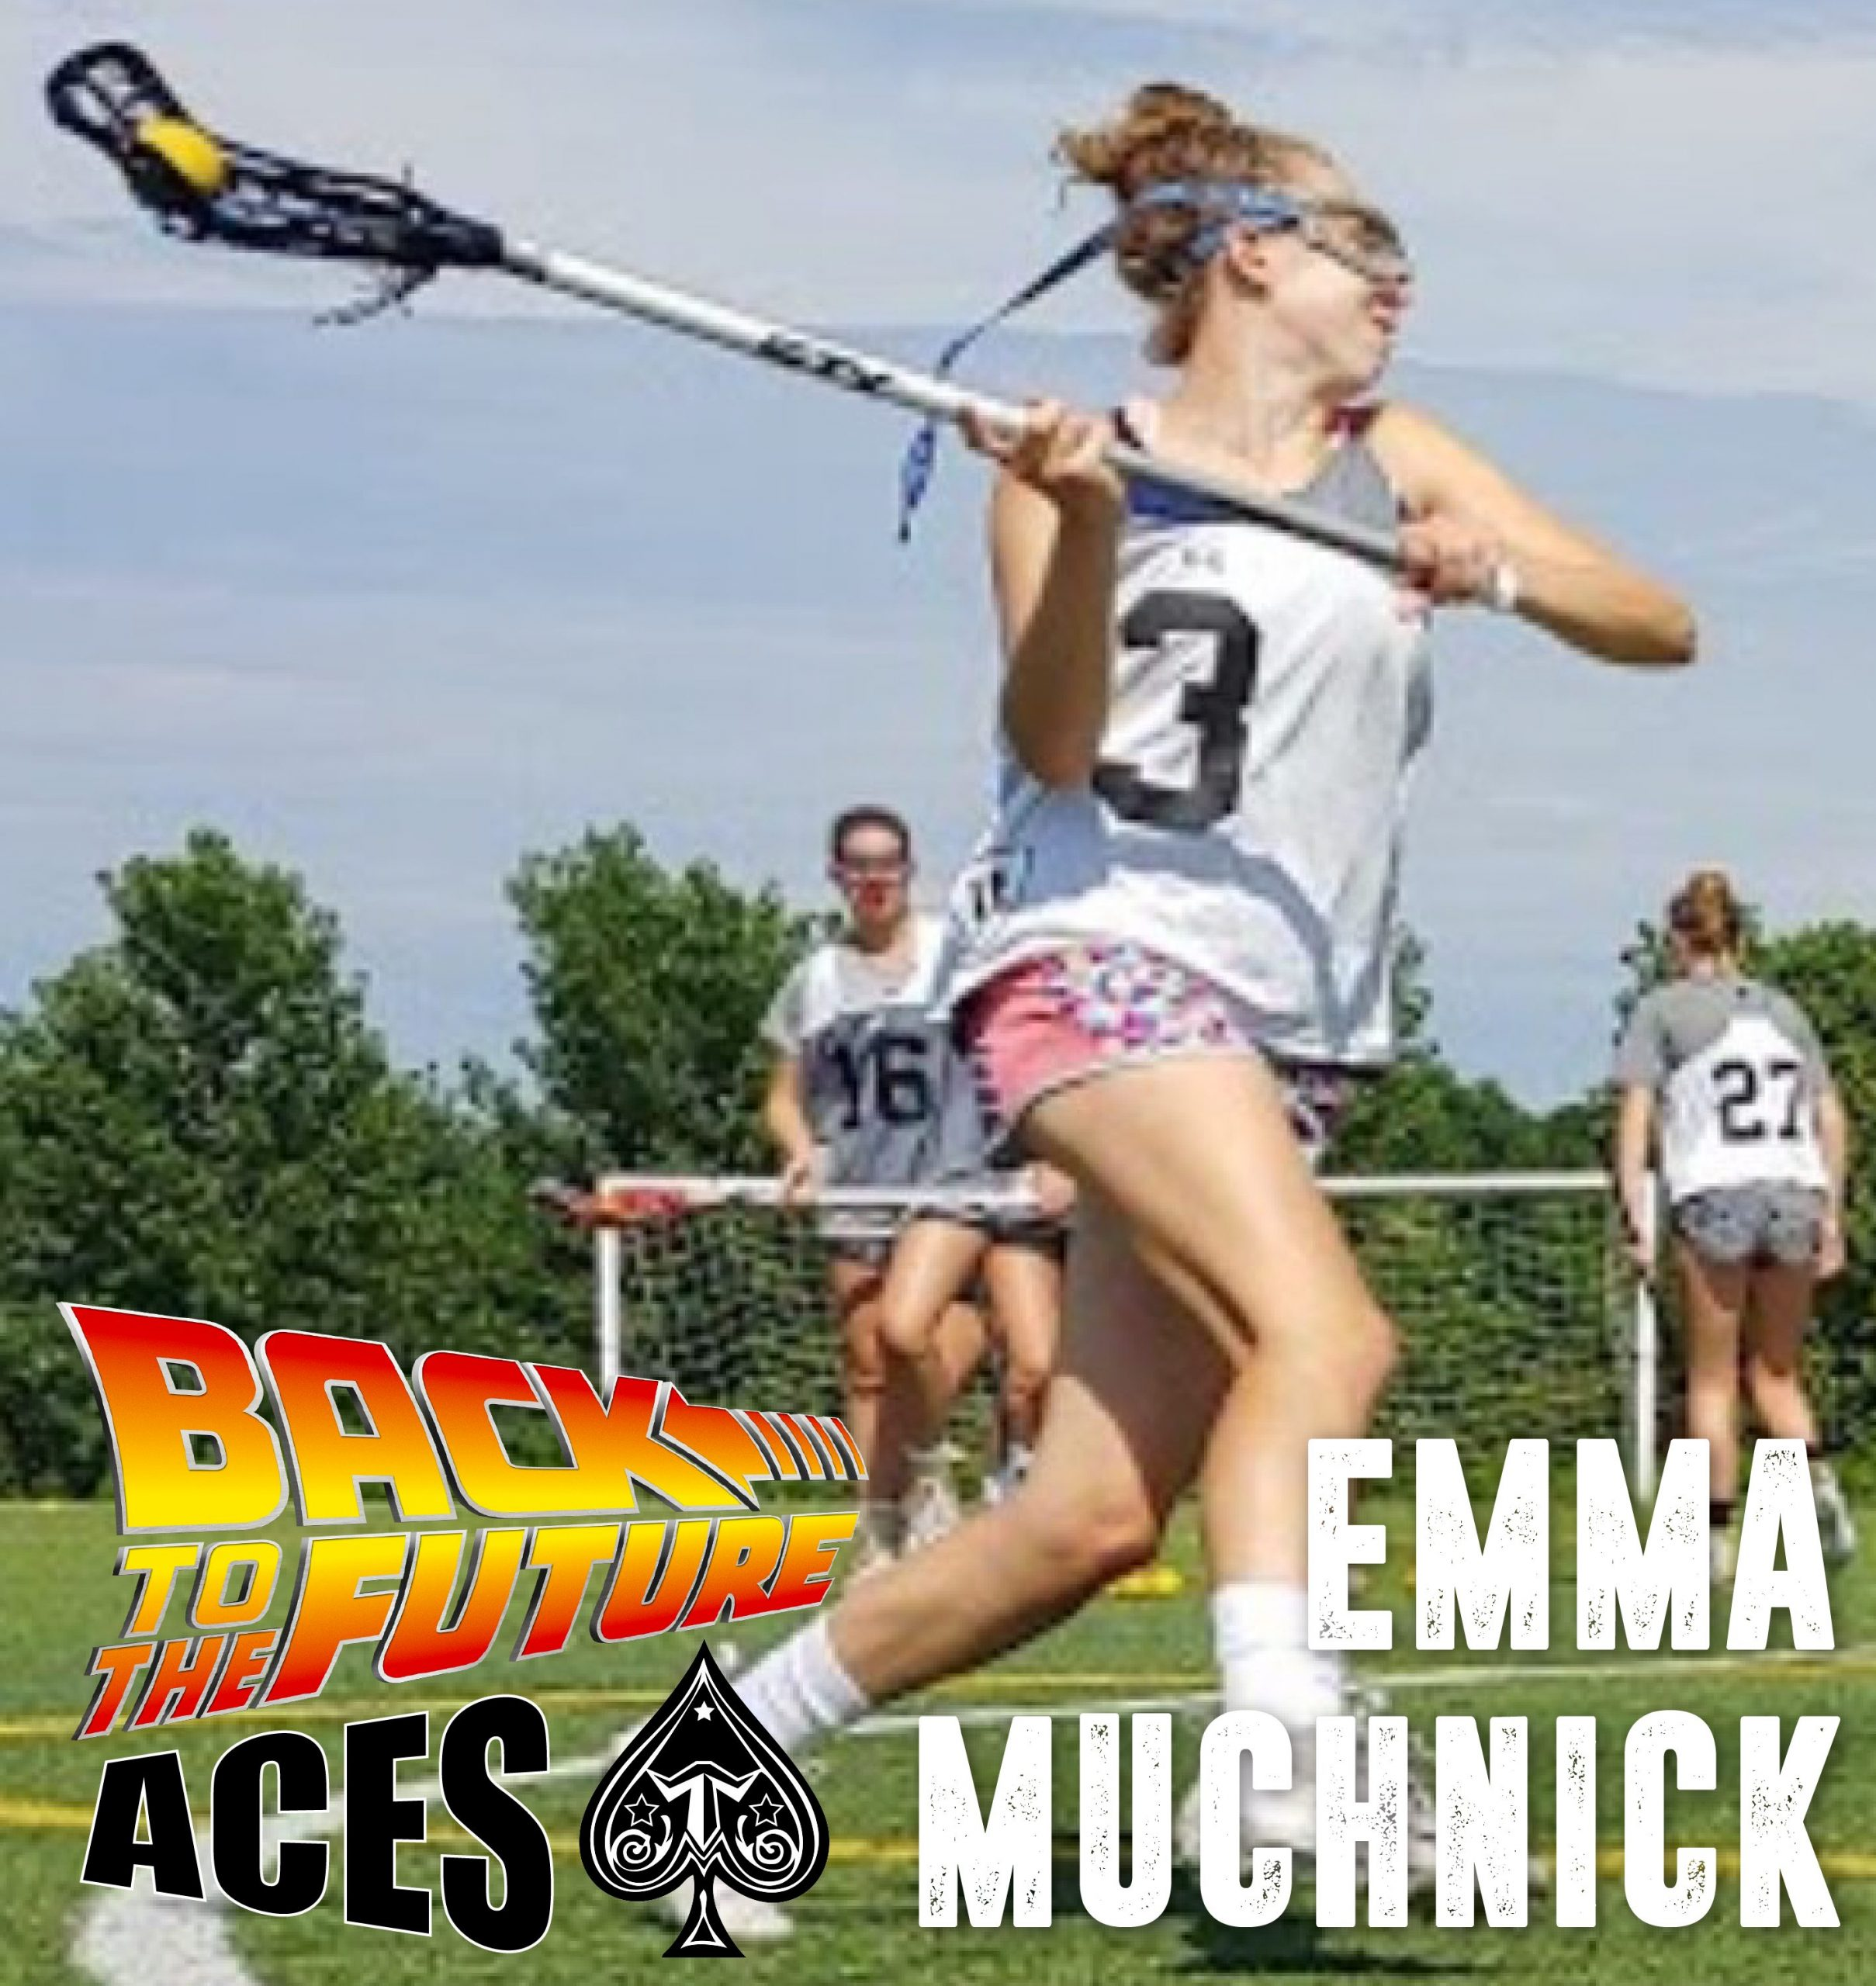 Back to the Future (Aces): Emma Muchnick